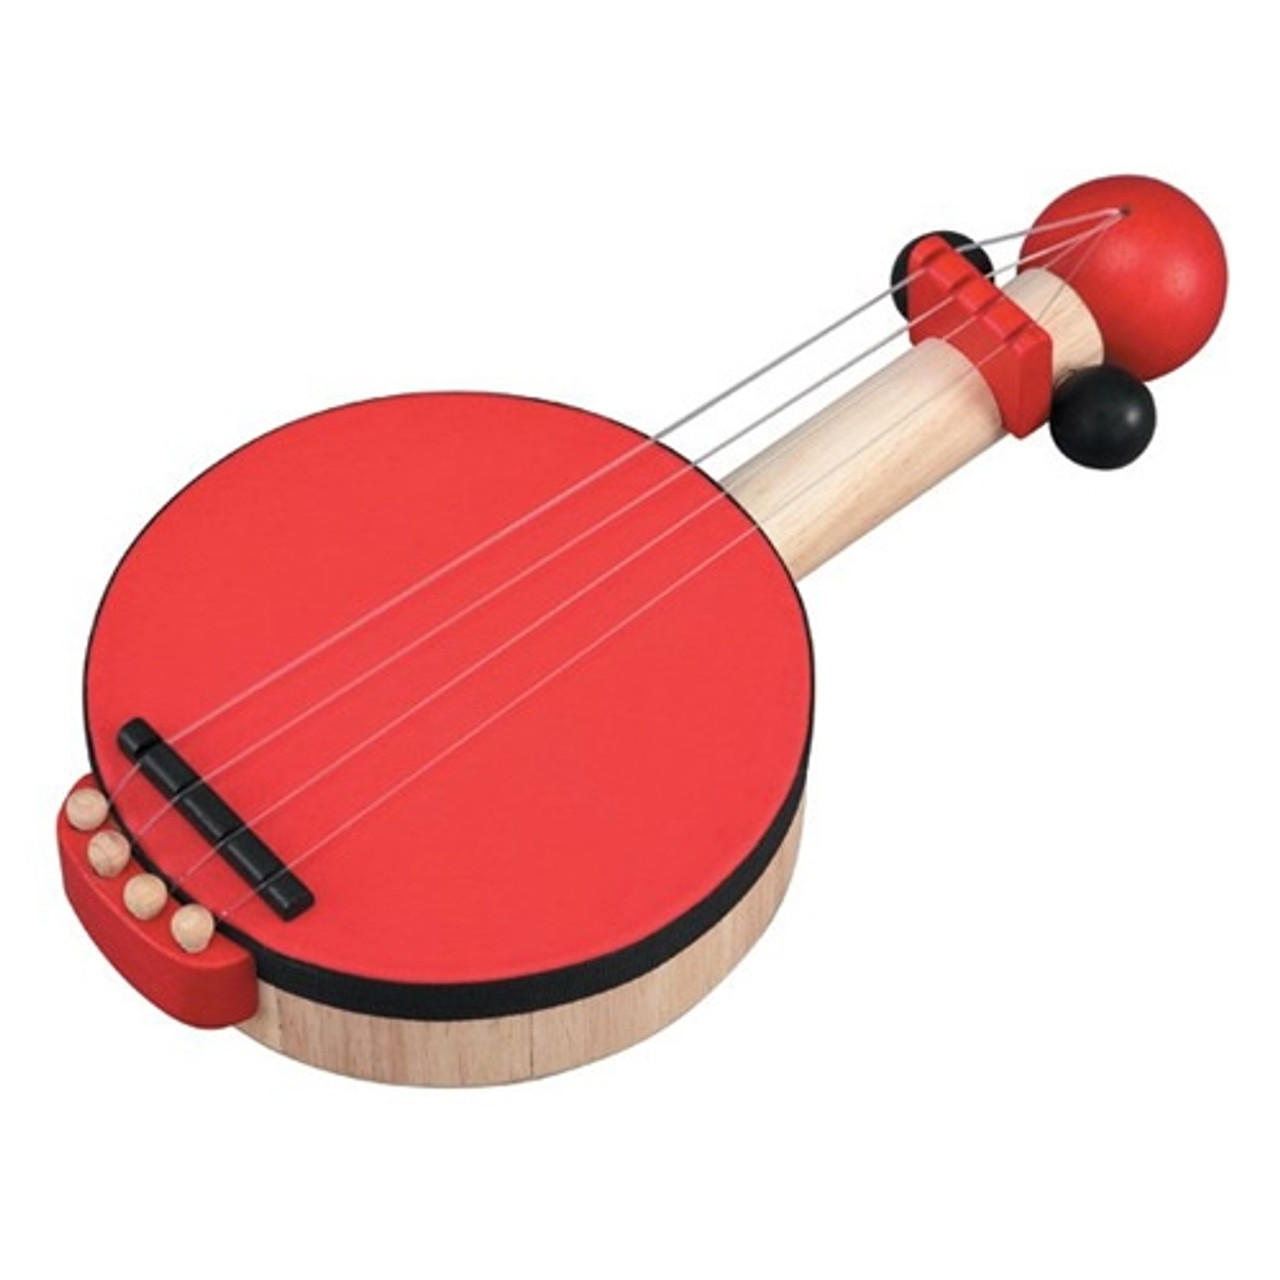 Musical Toys for Toddlers - Banjo